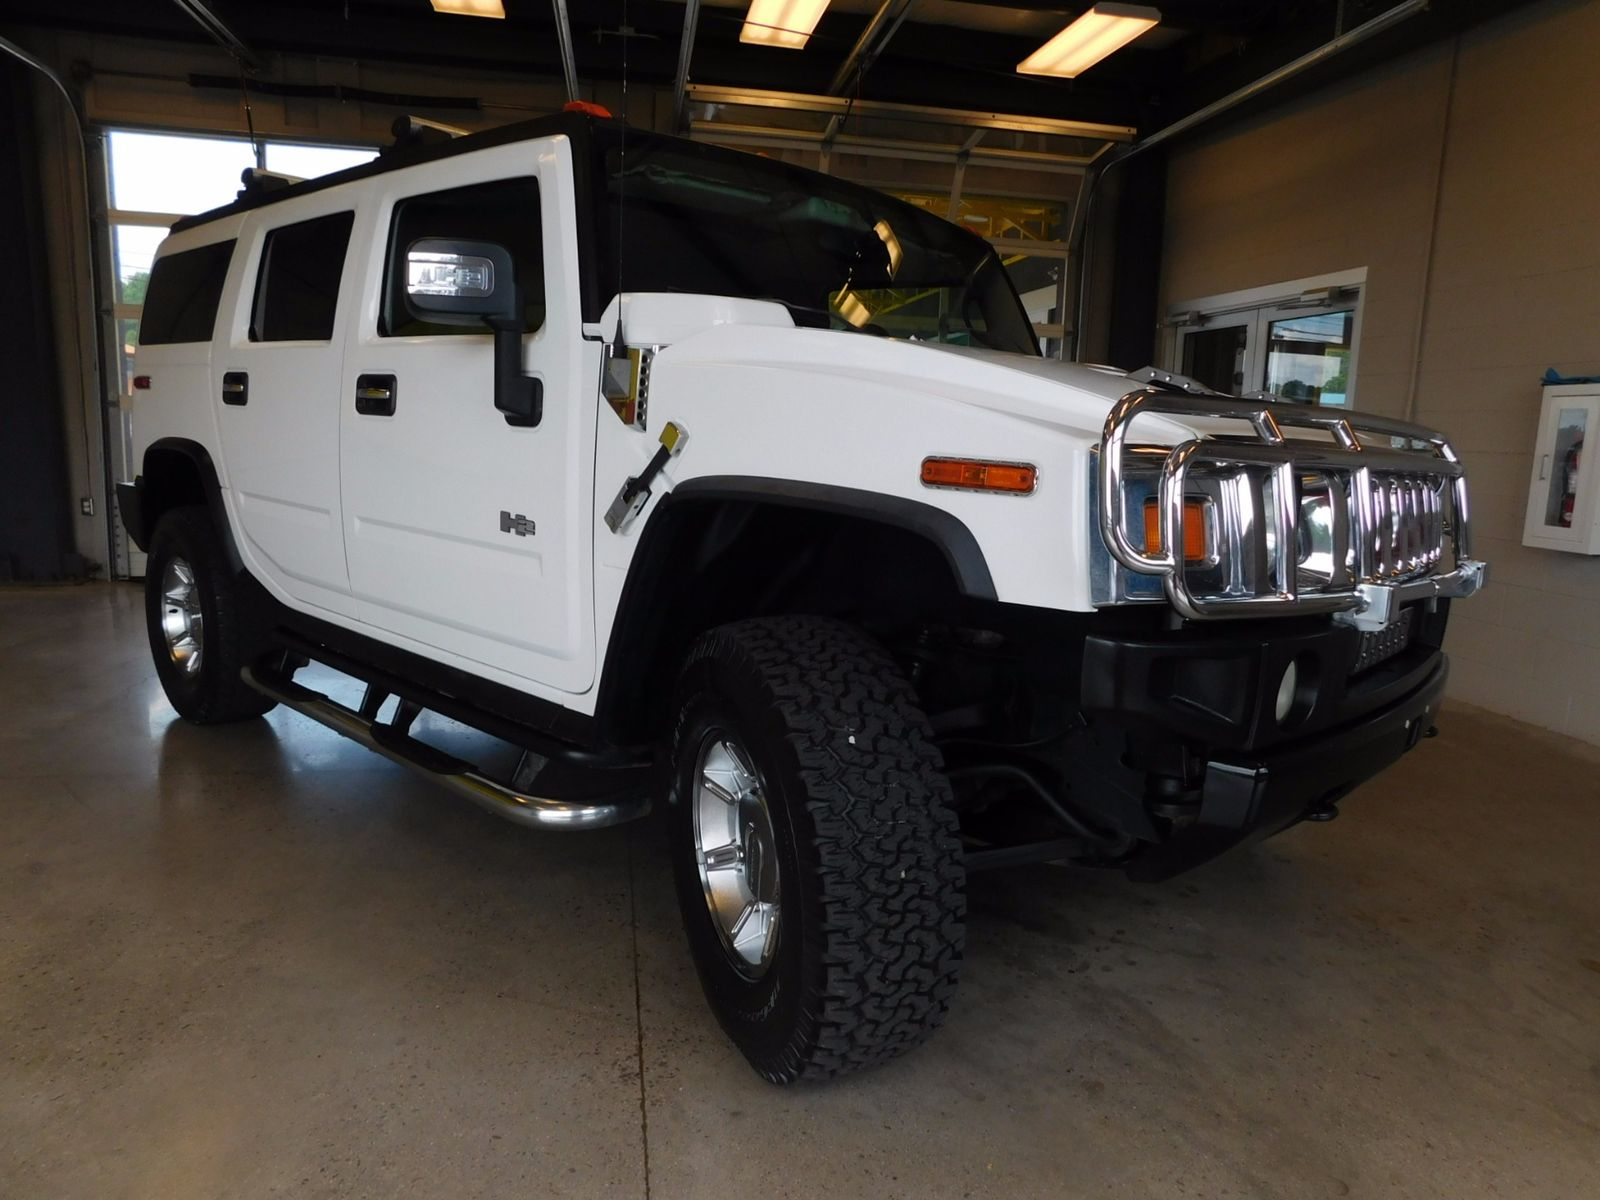 Best Hummer Mileage Honda Civic and Accord Gallery